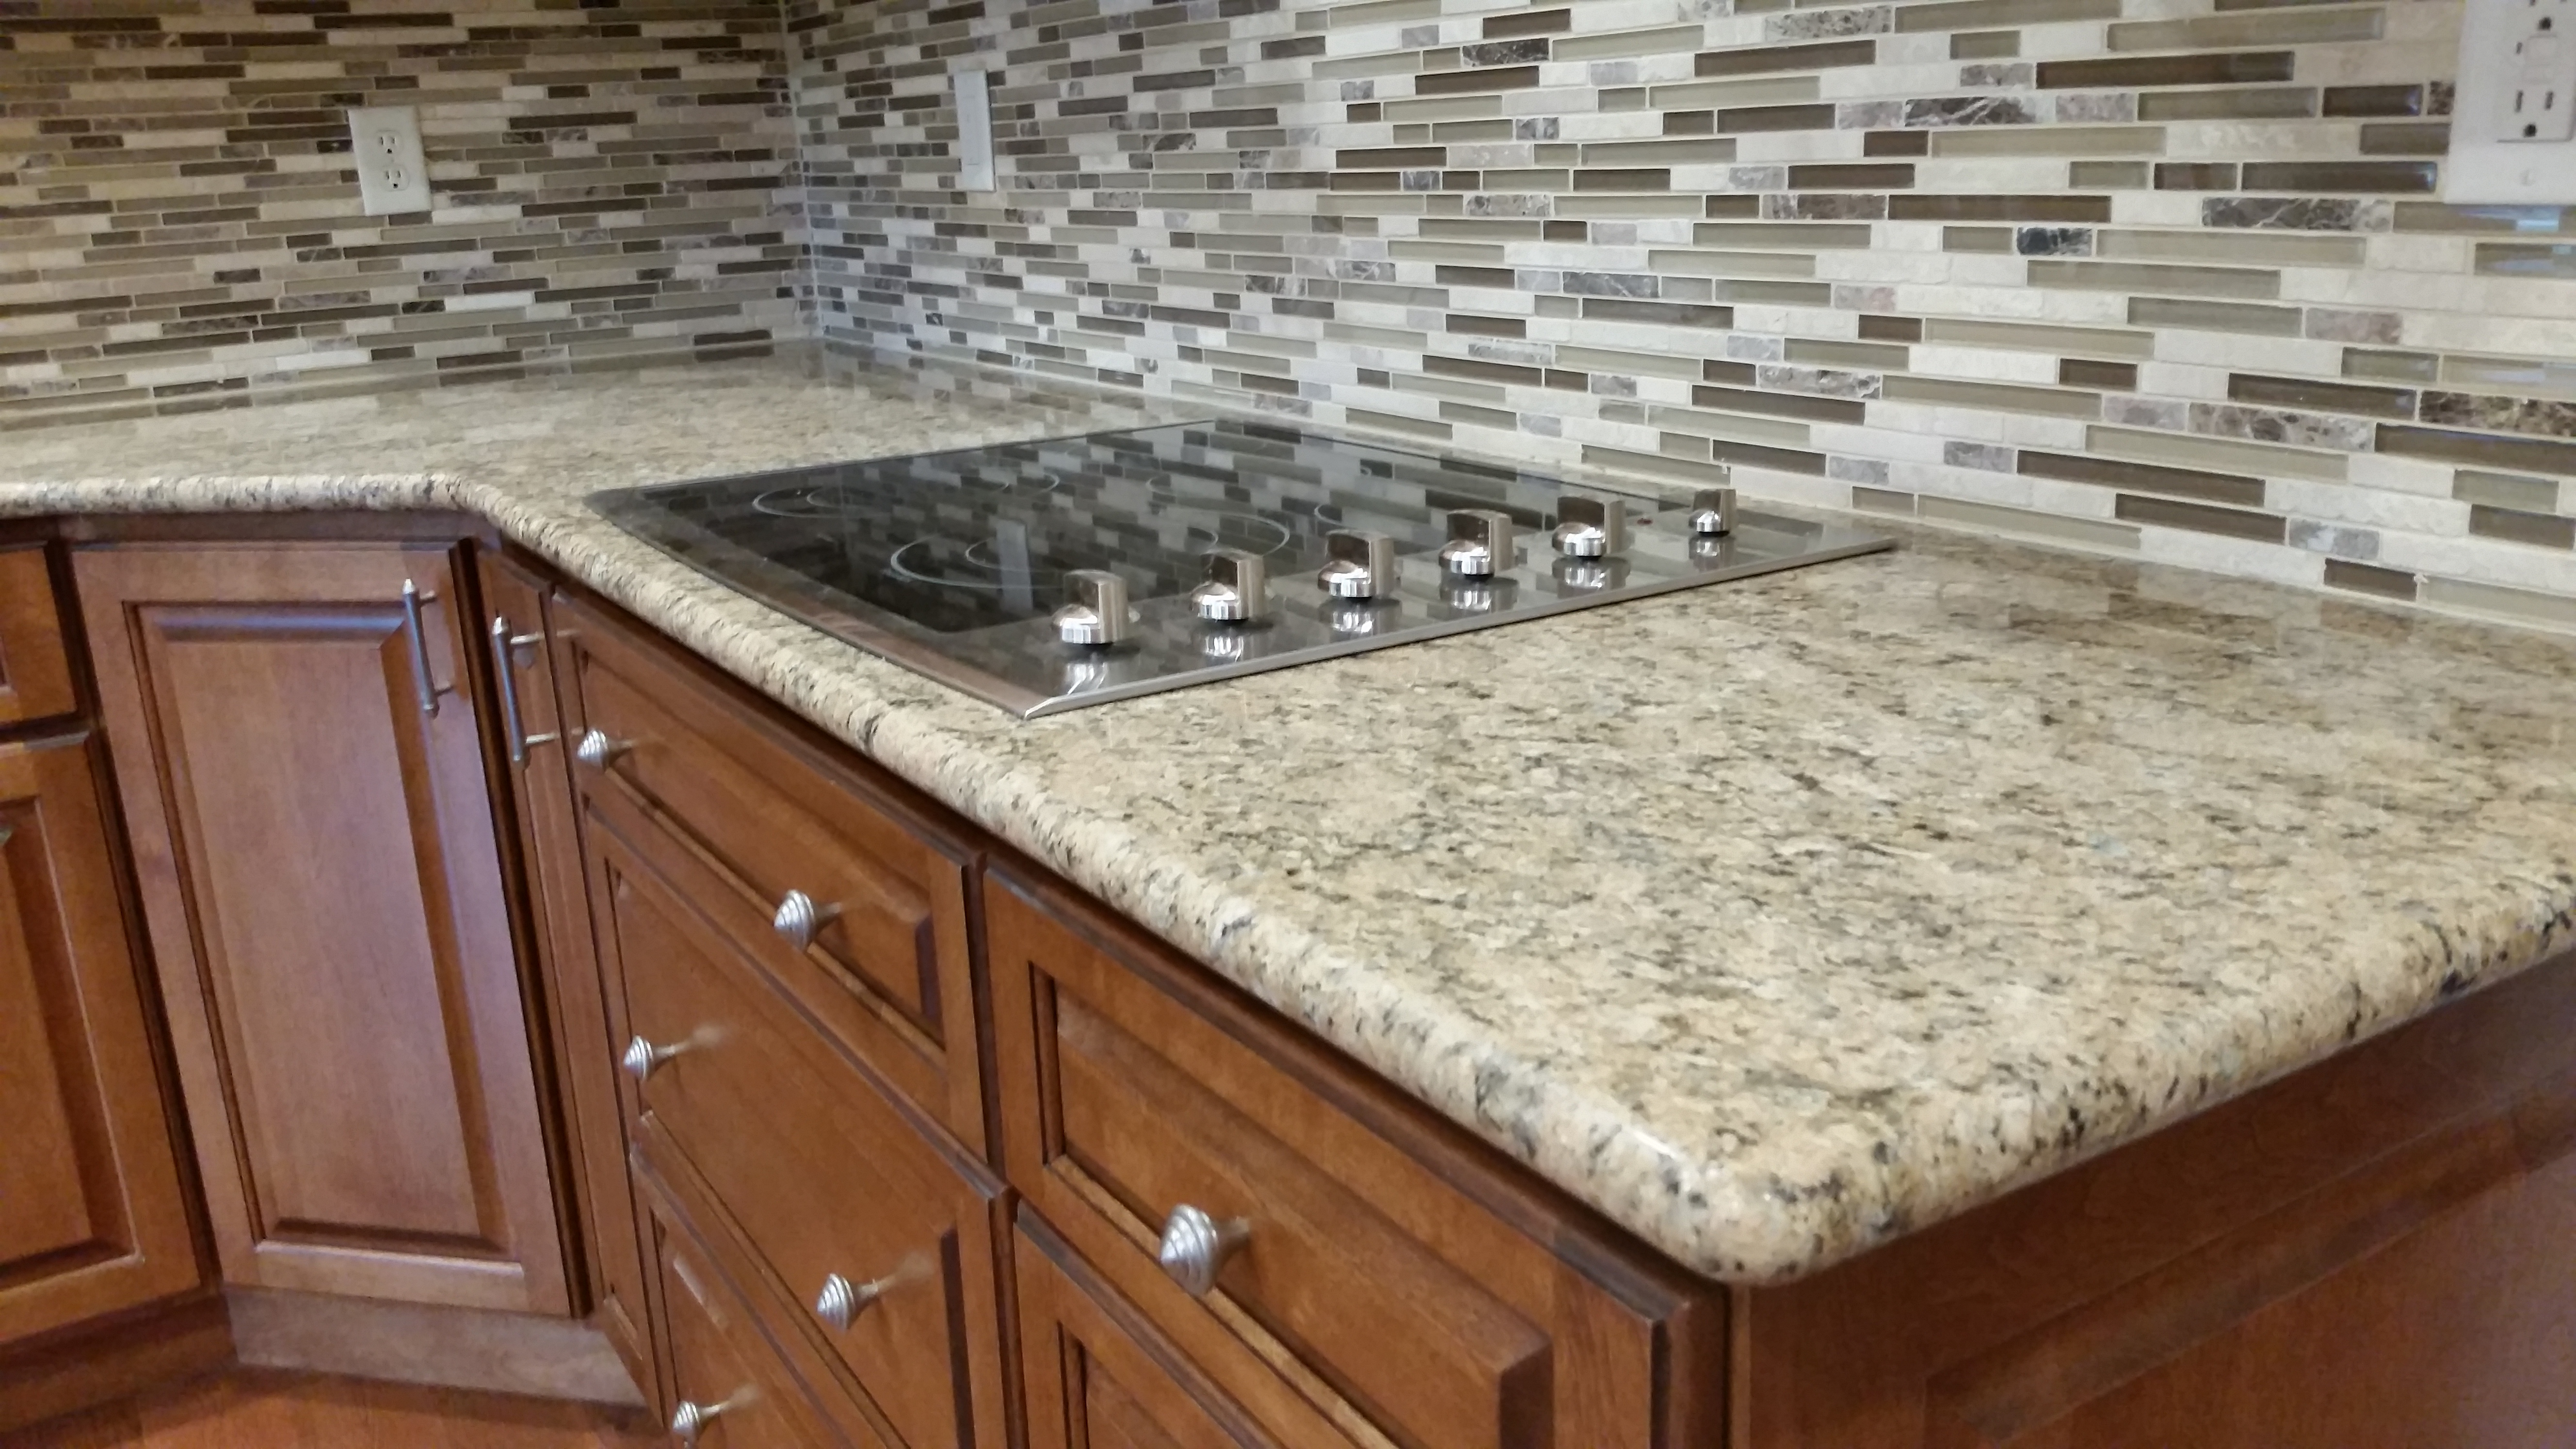 italian and buffalo bathroom kitchen images countertops showcase granite countertop in edited marble dsc ny